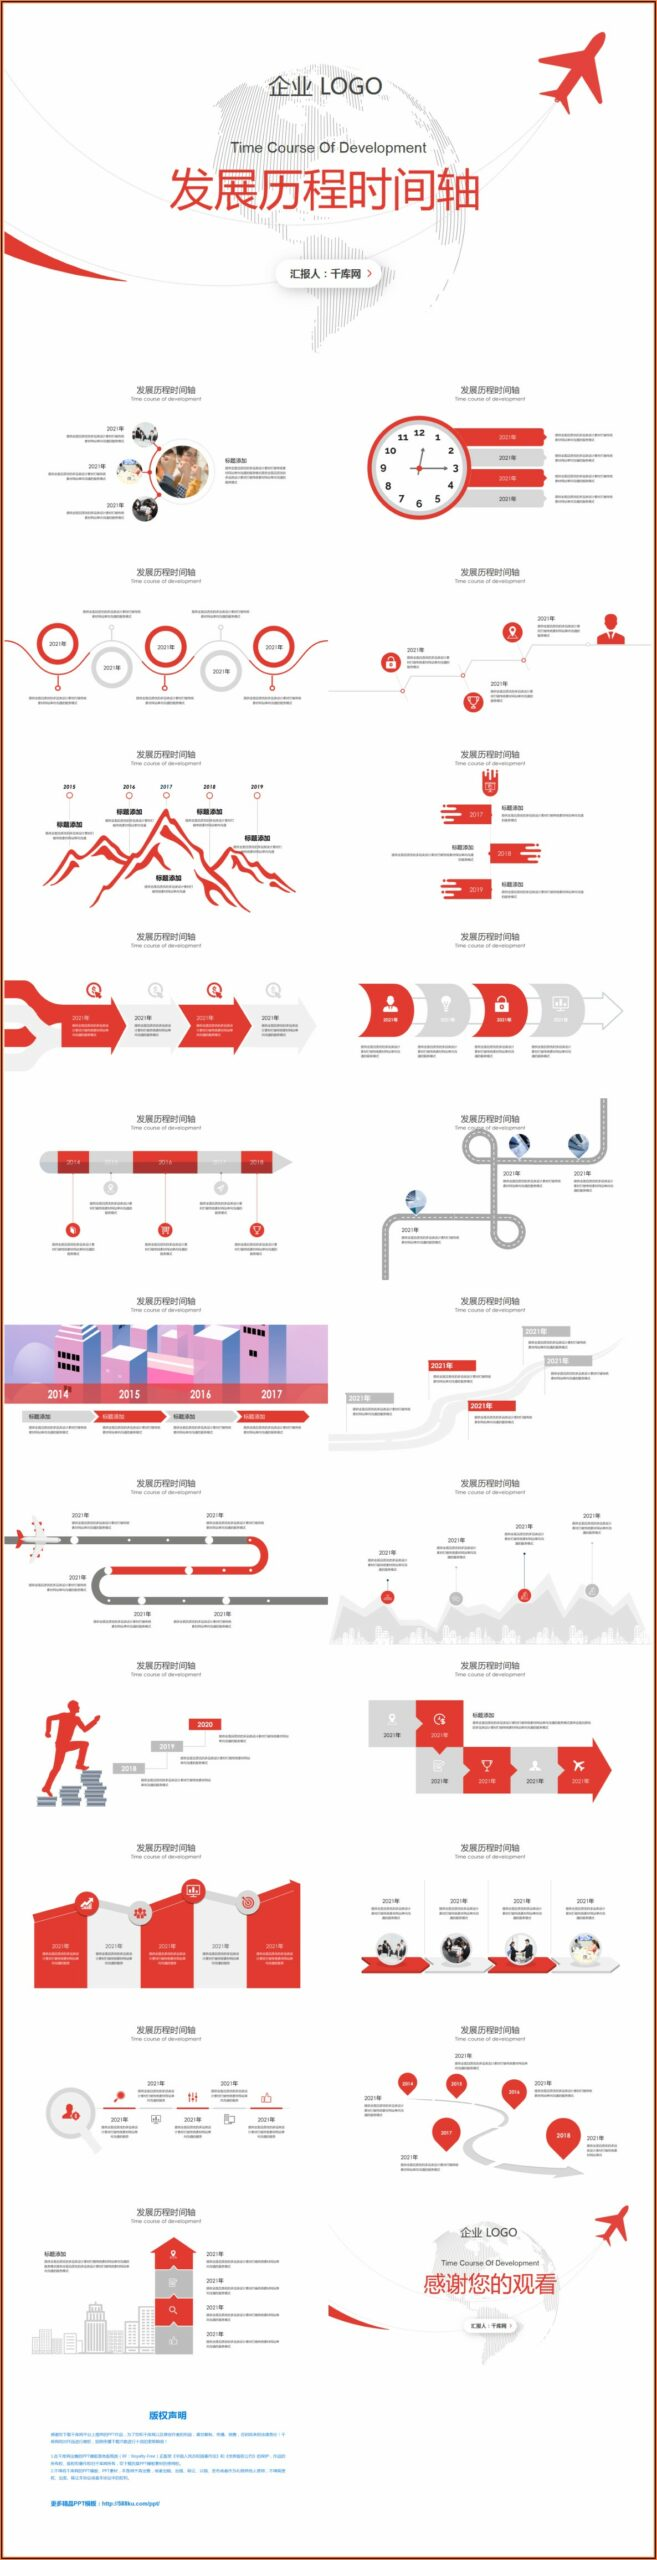 Timeline Ppt Template Free Download